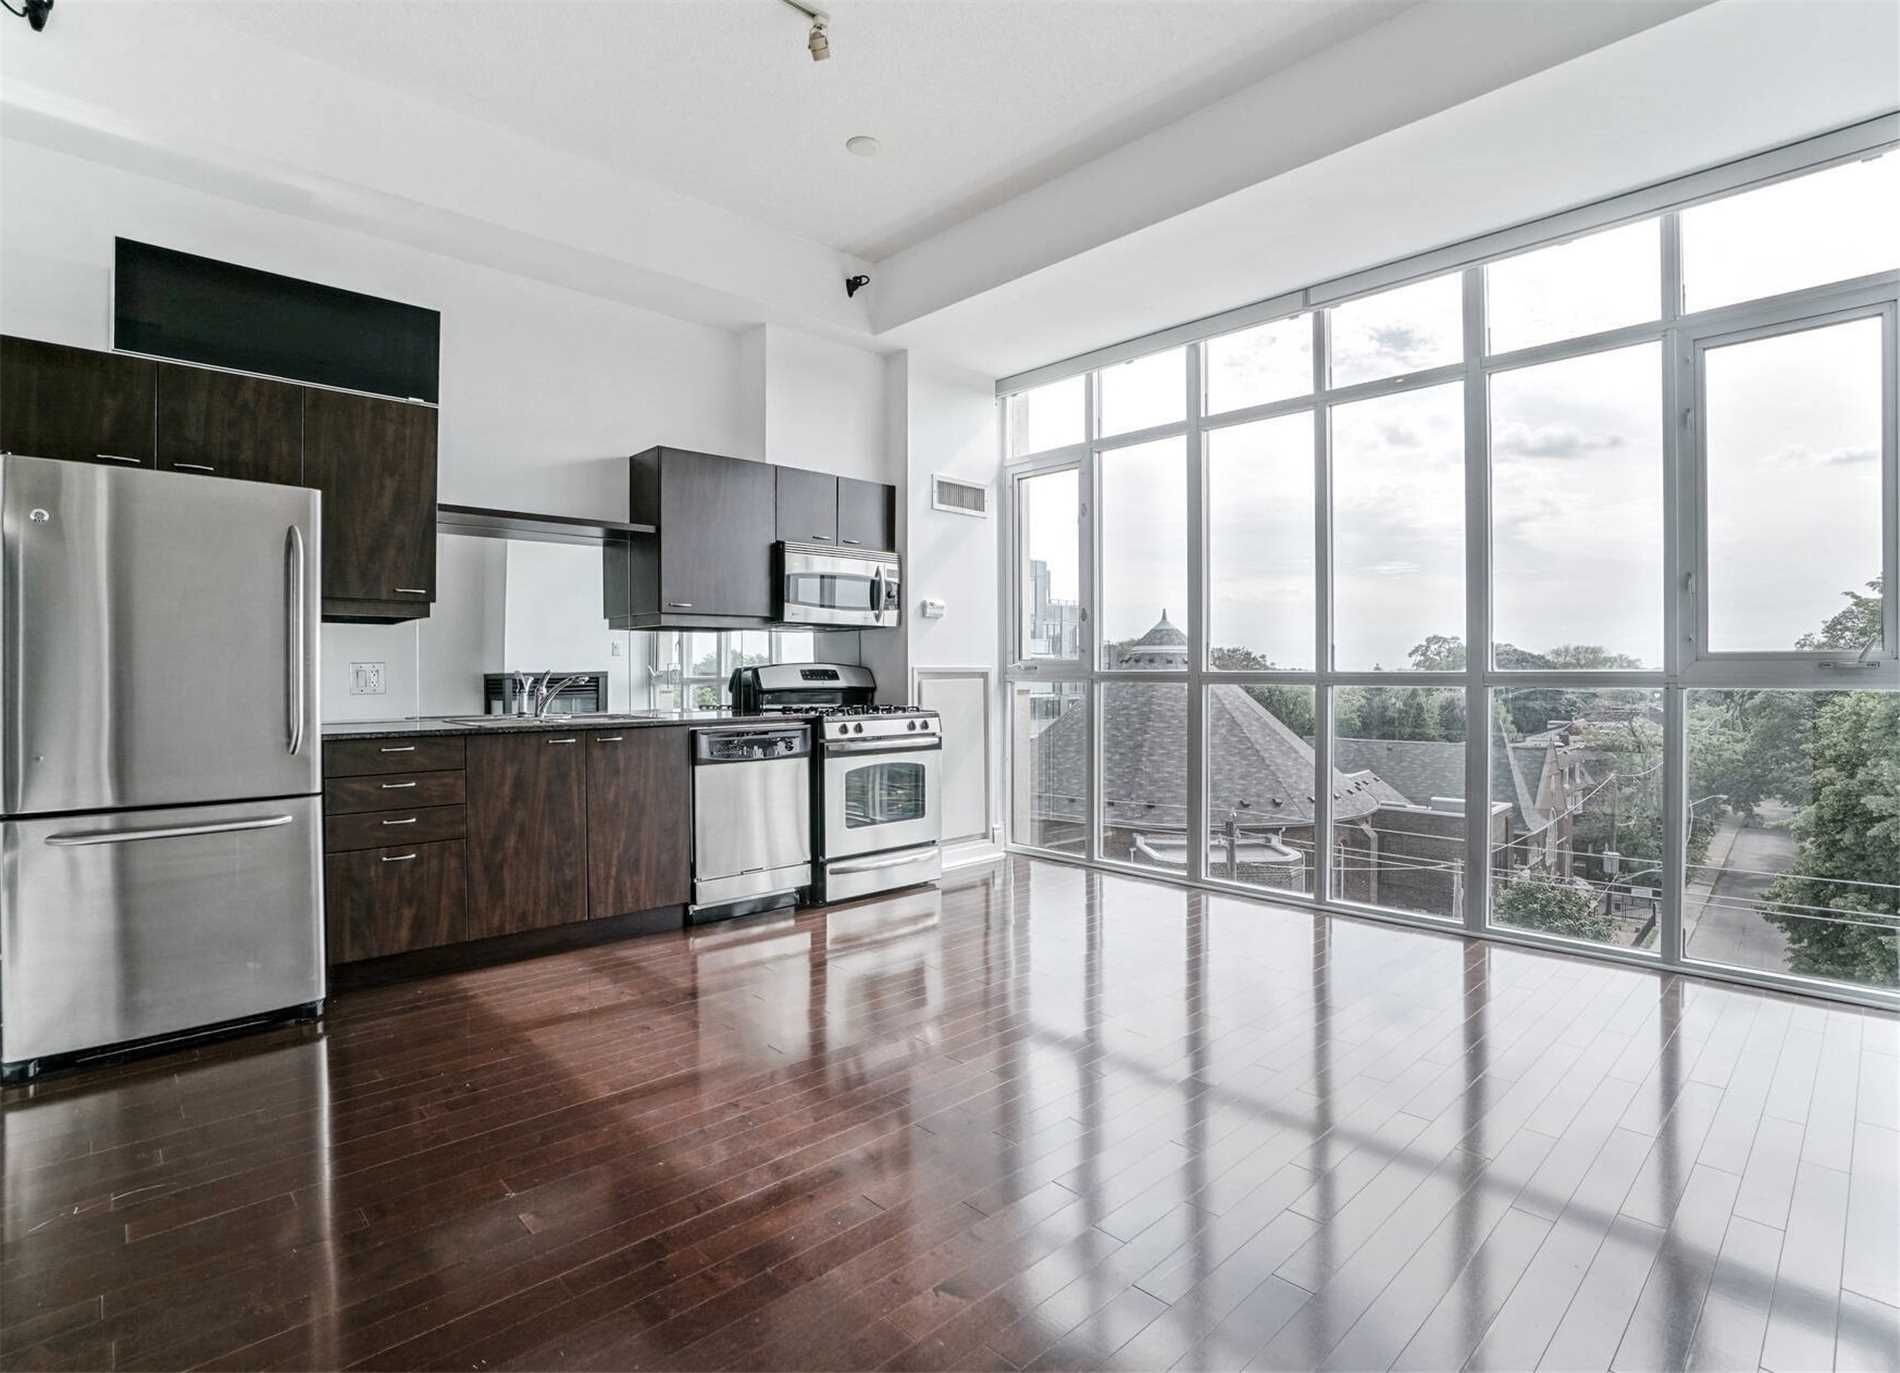 437 Roncesvalles Ave, unit 513 for sale in Toronto - image #2